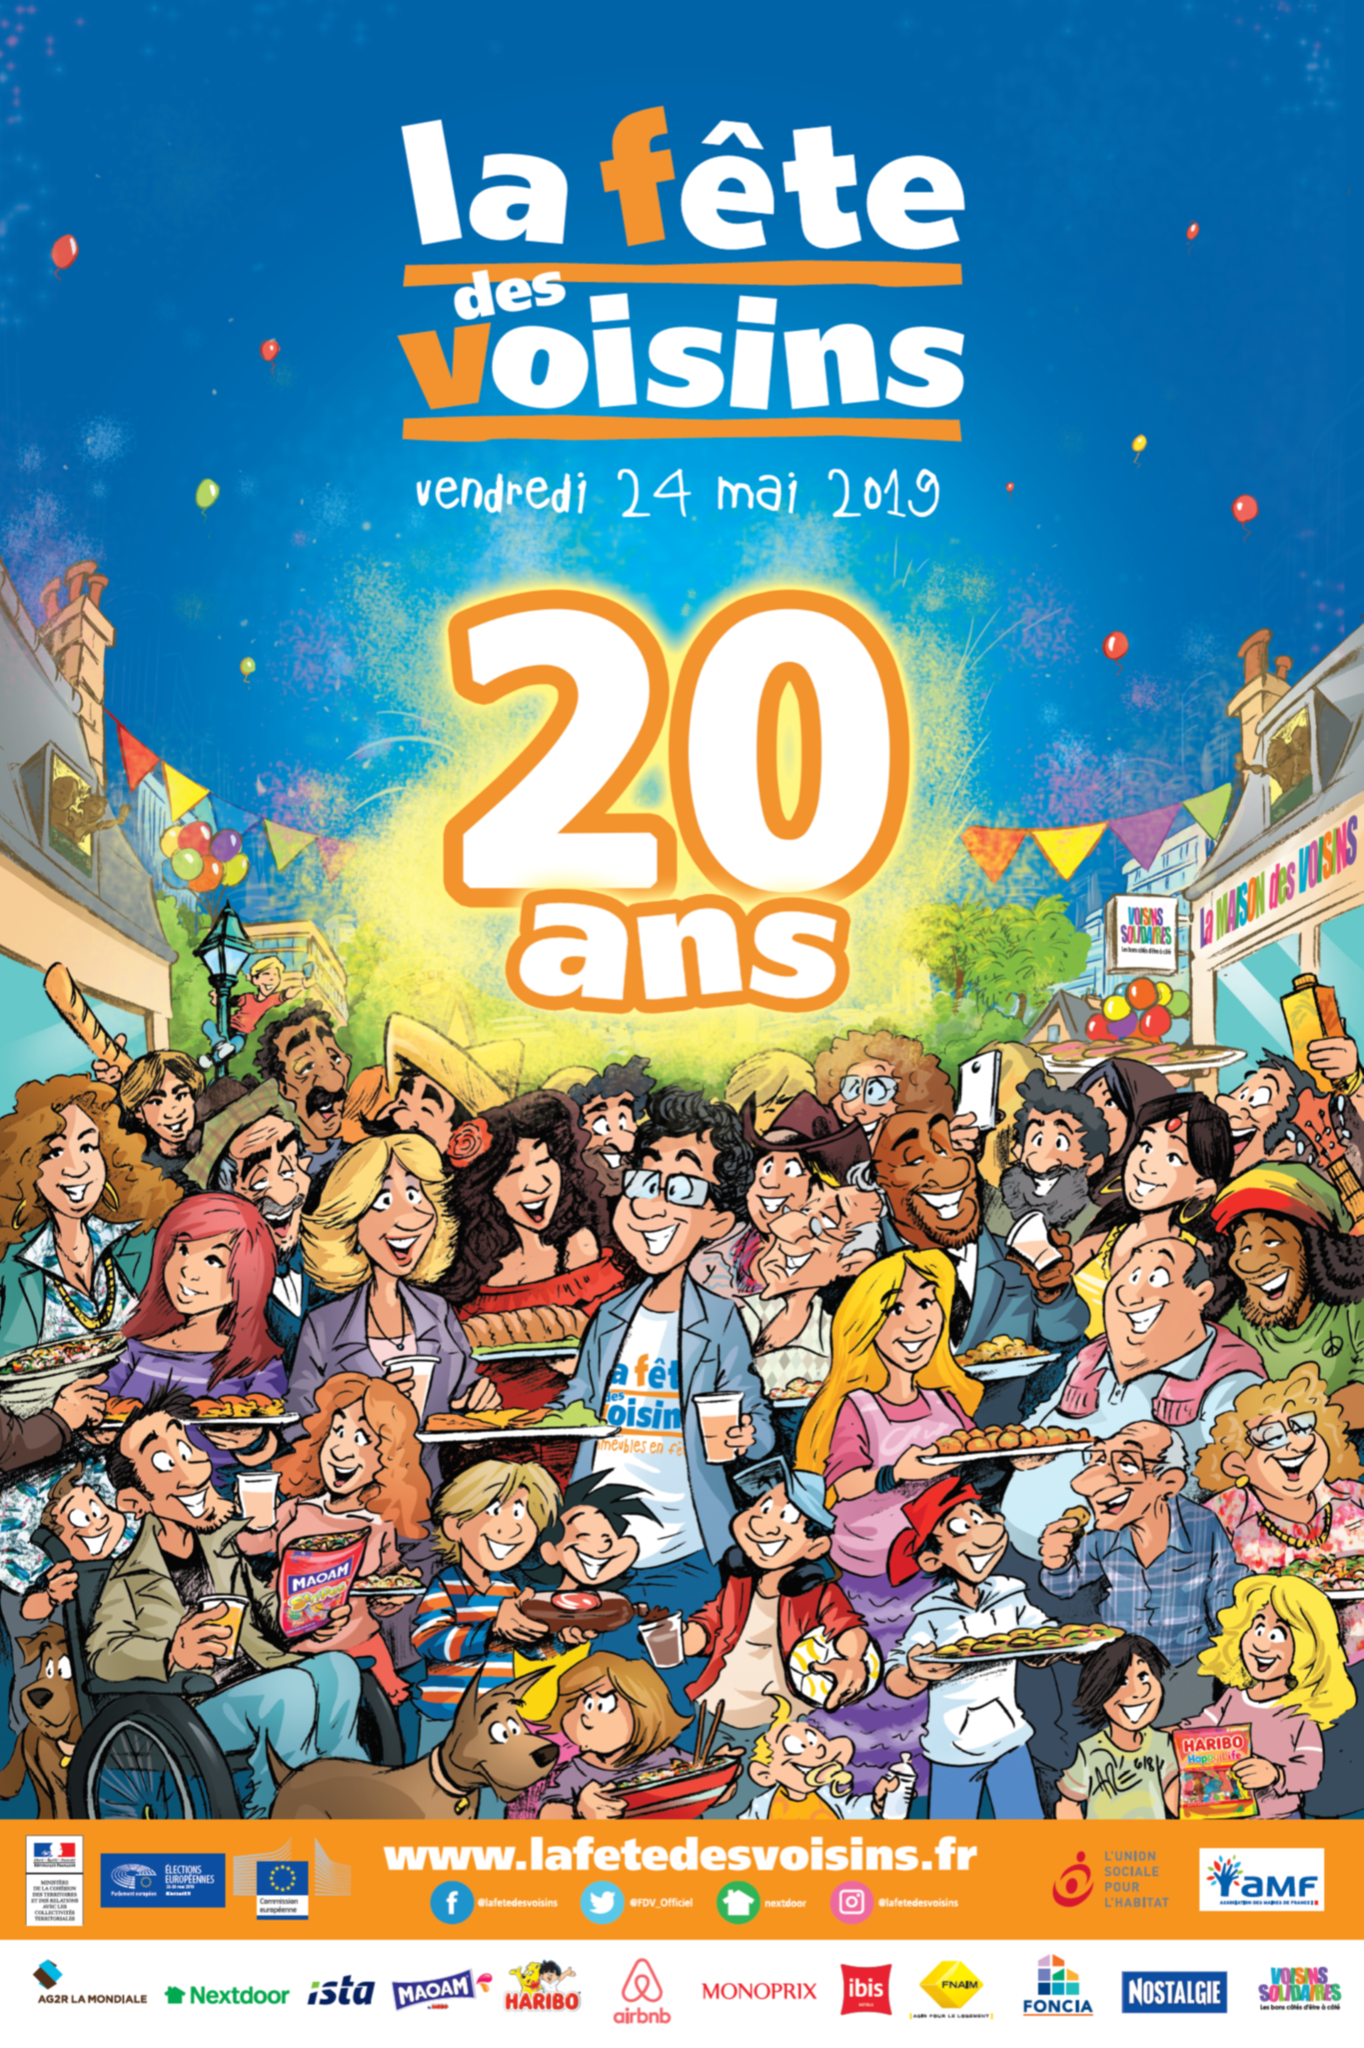 La fête des voisins, c'est demain ! The European neighbours'day, it's tomorrow !